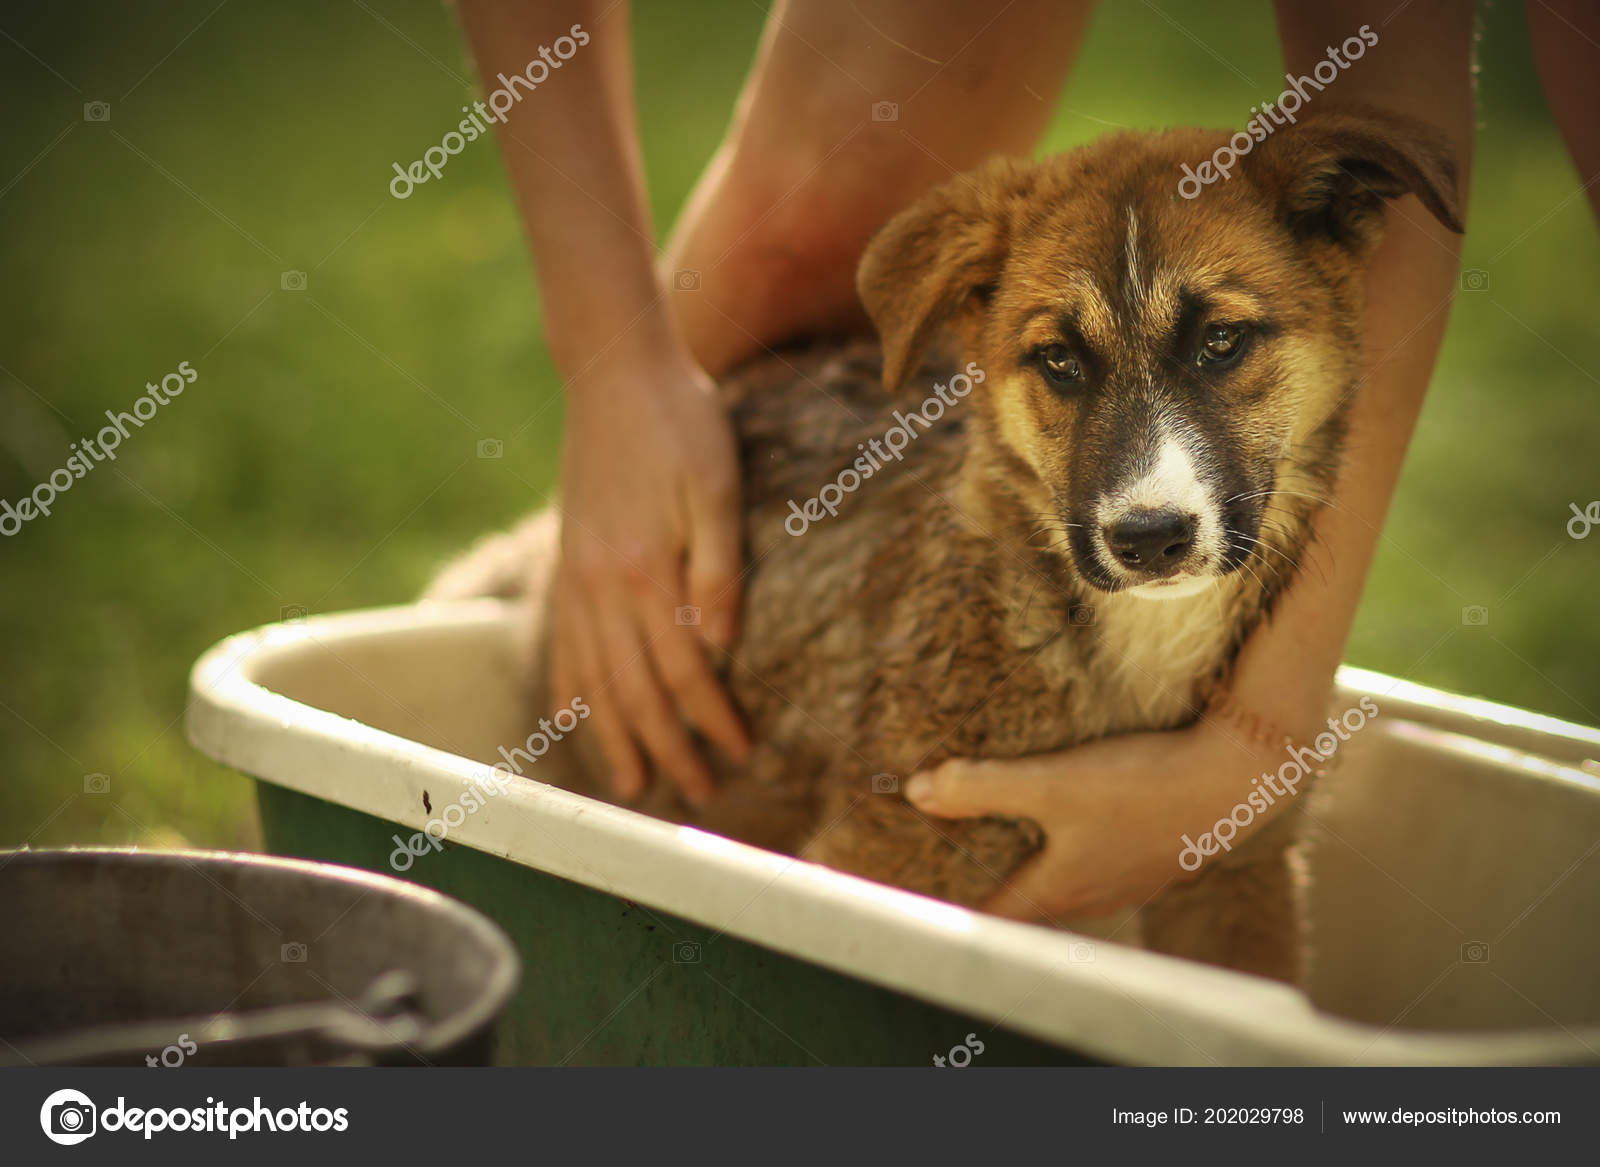 kids hand wasing puppy in bathtub close up photo — Stock Photo ...